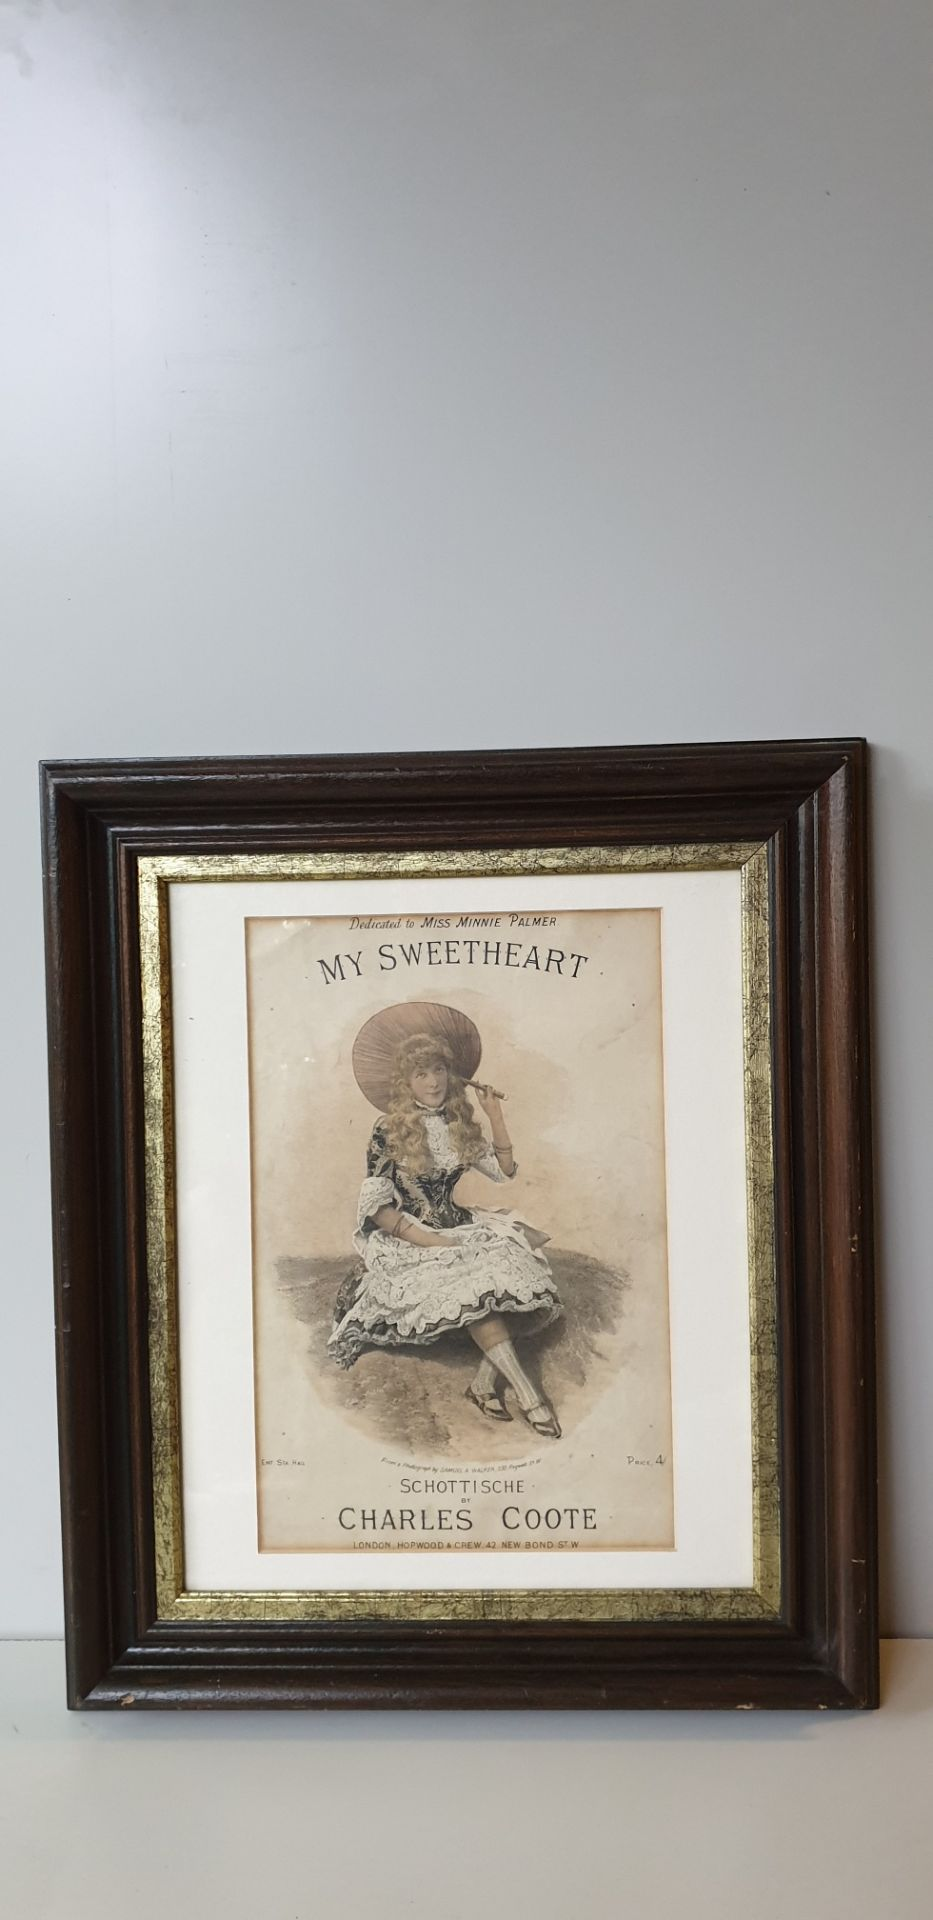 Lot 274 - Framed Drawing Charles Coote